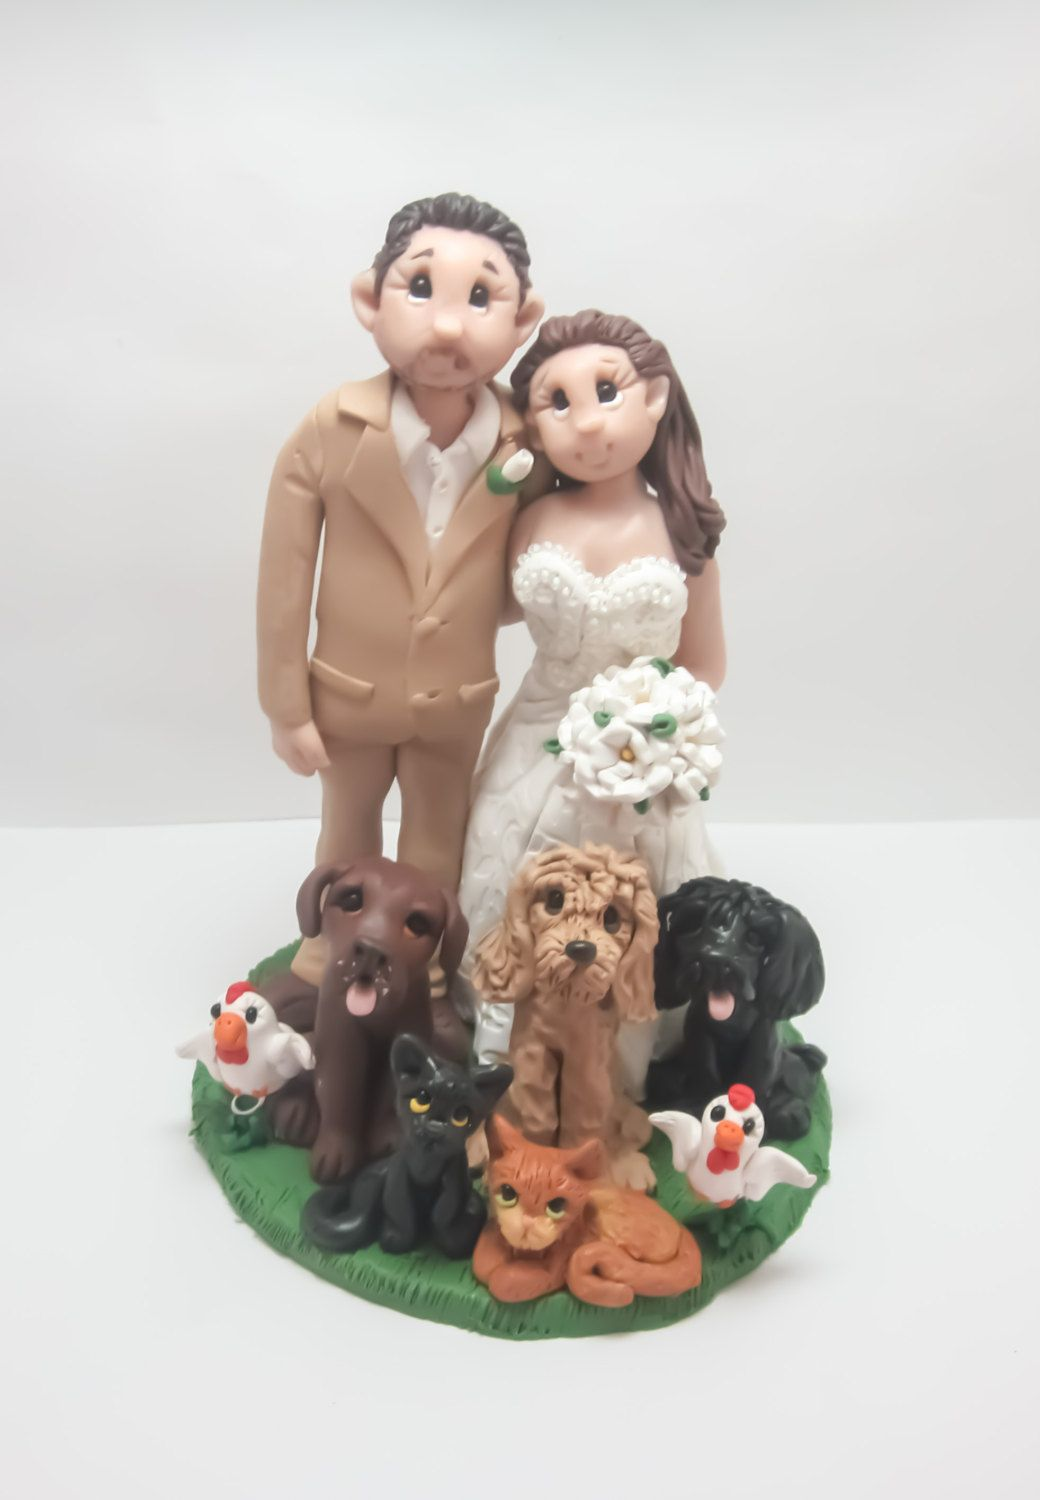 Wedding cake topper custom cake topper funny cake topper wedding